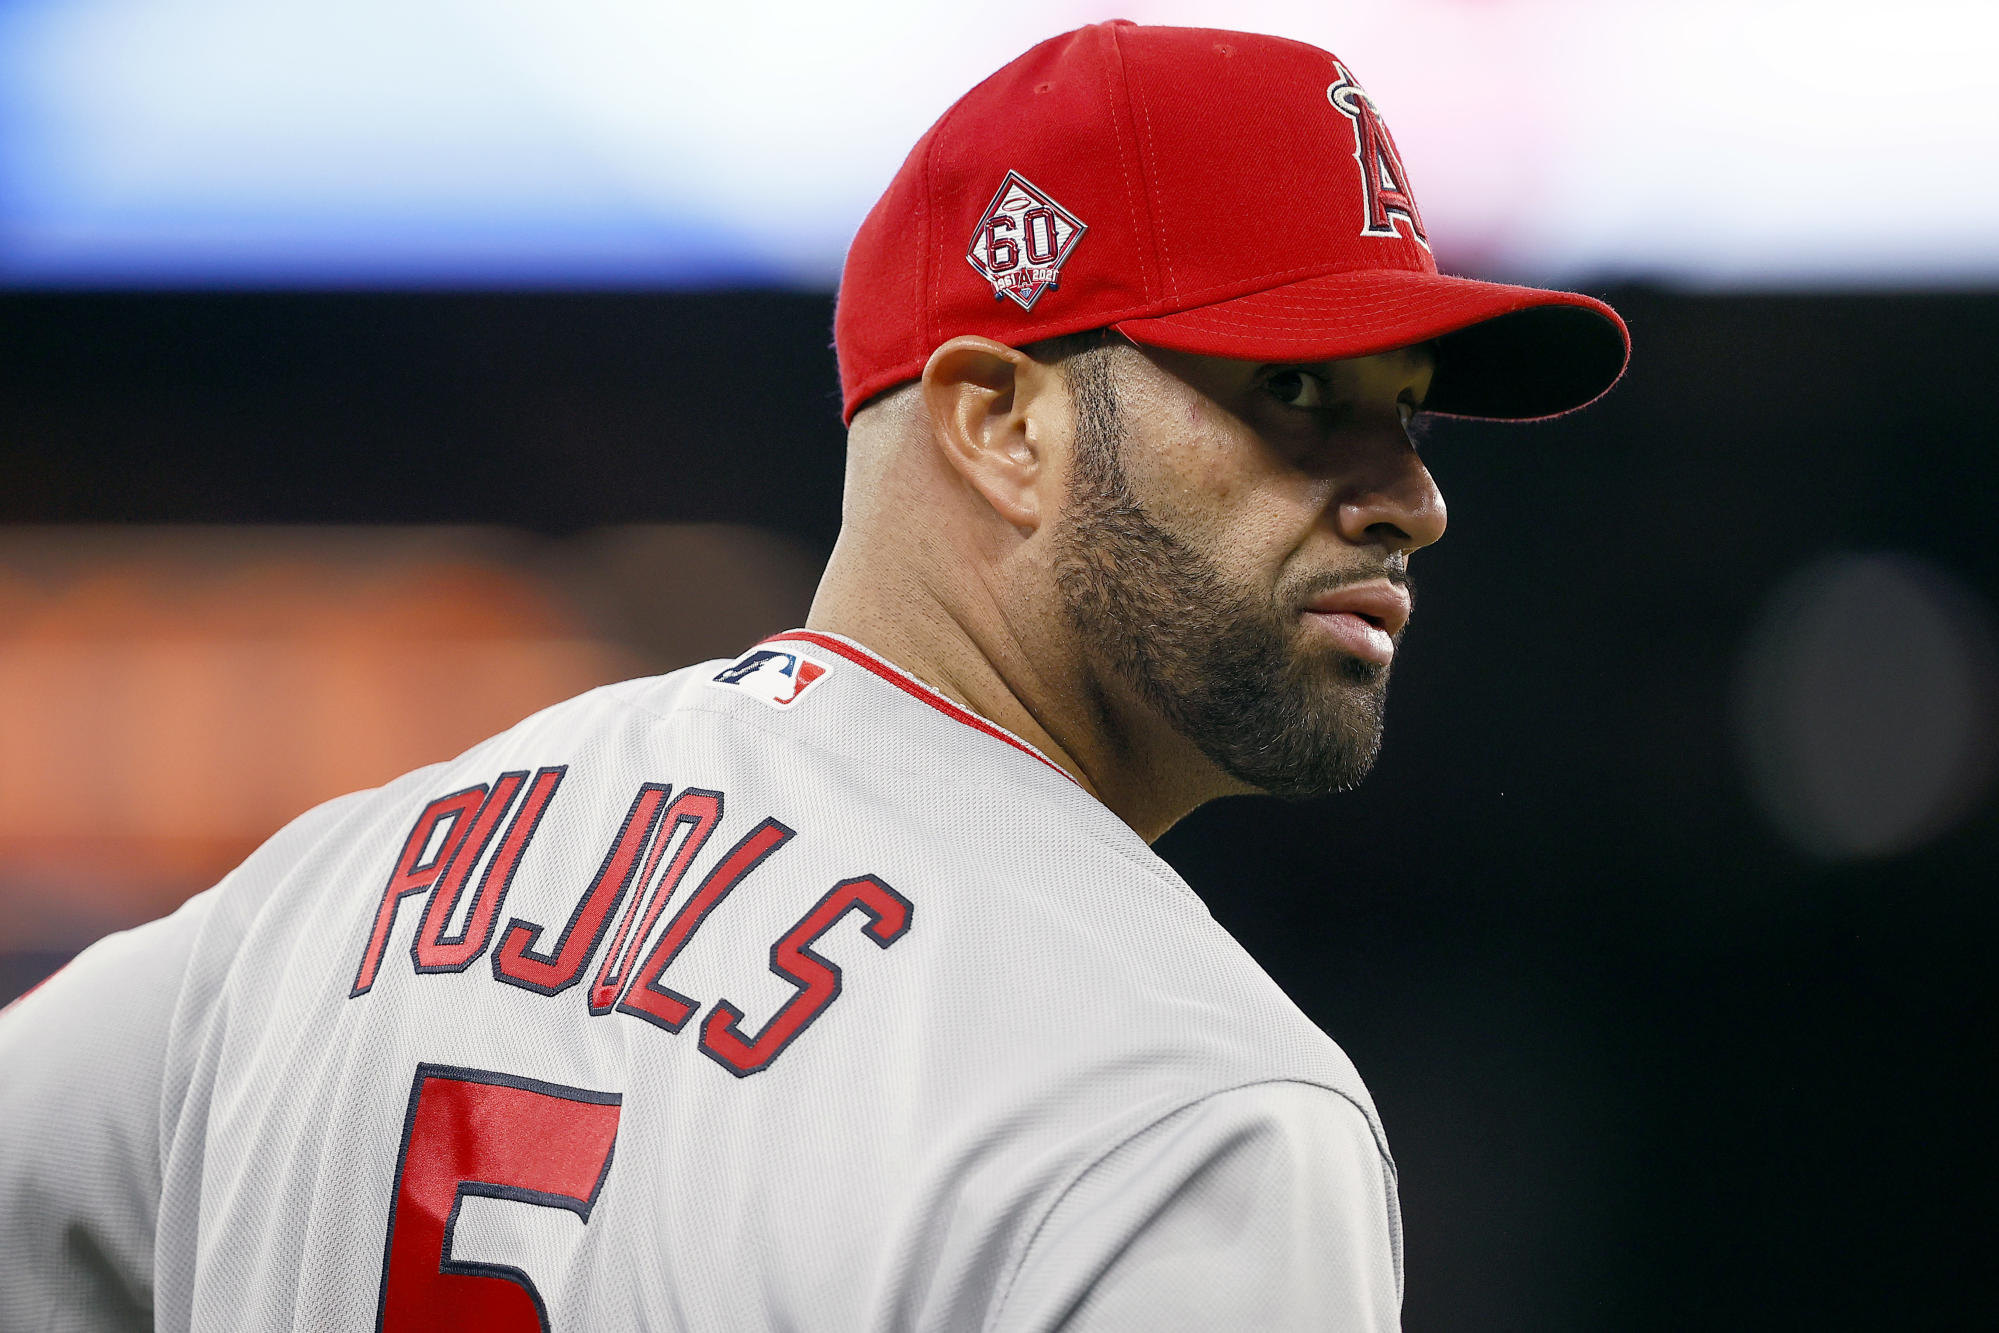 Pedro Martinez, David Ortiz upset at the 'shameful' way Angels handled Albert Pujols situation - Yahoo Sports